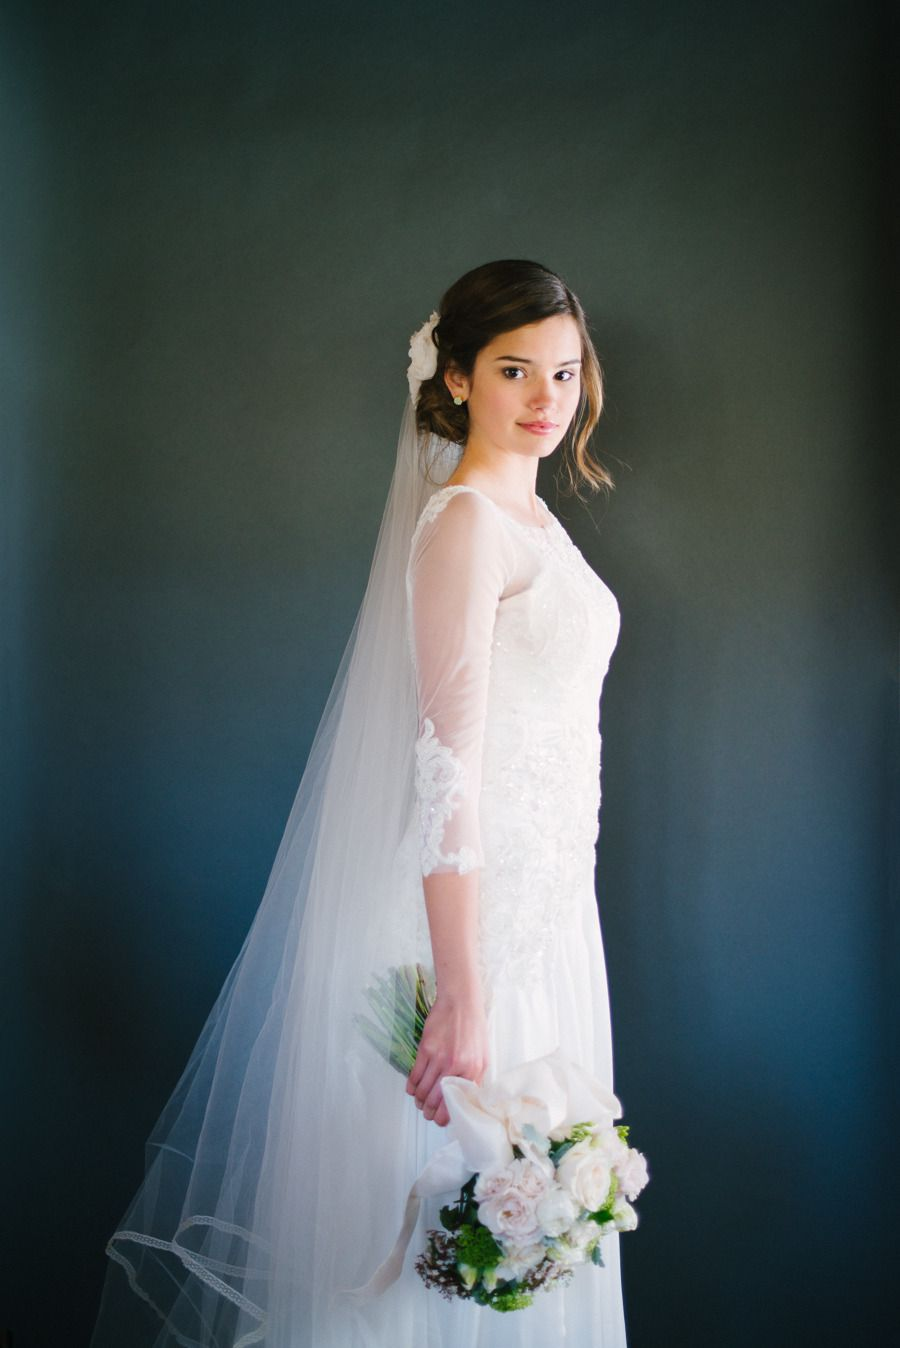 O'Malley Photographers | Dress: Wedding Gowns by Daci